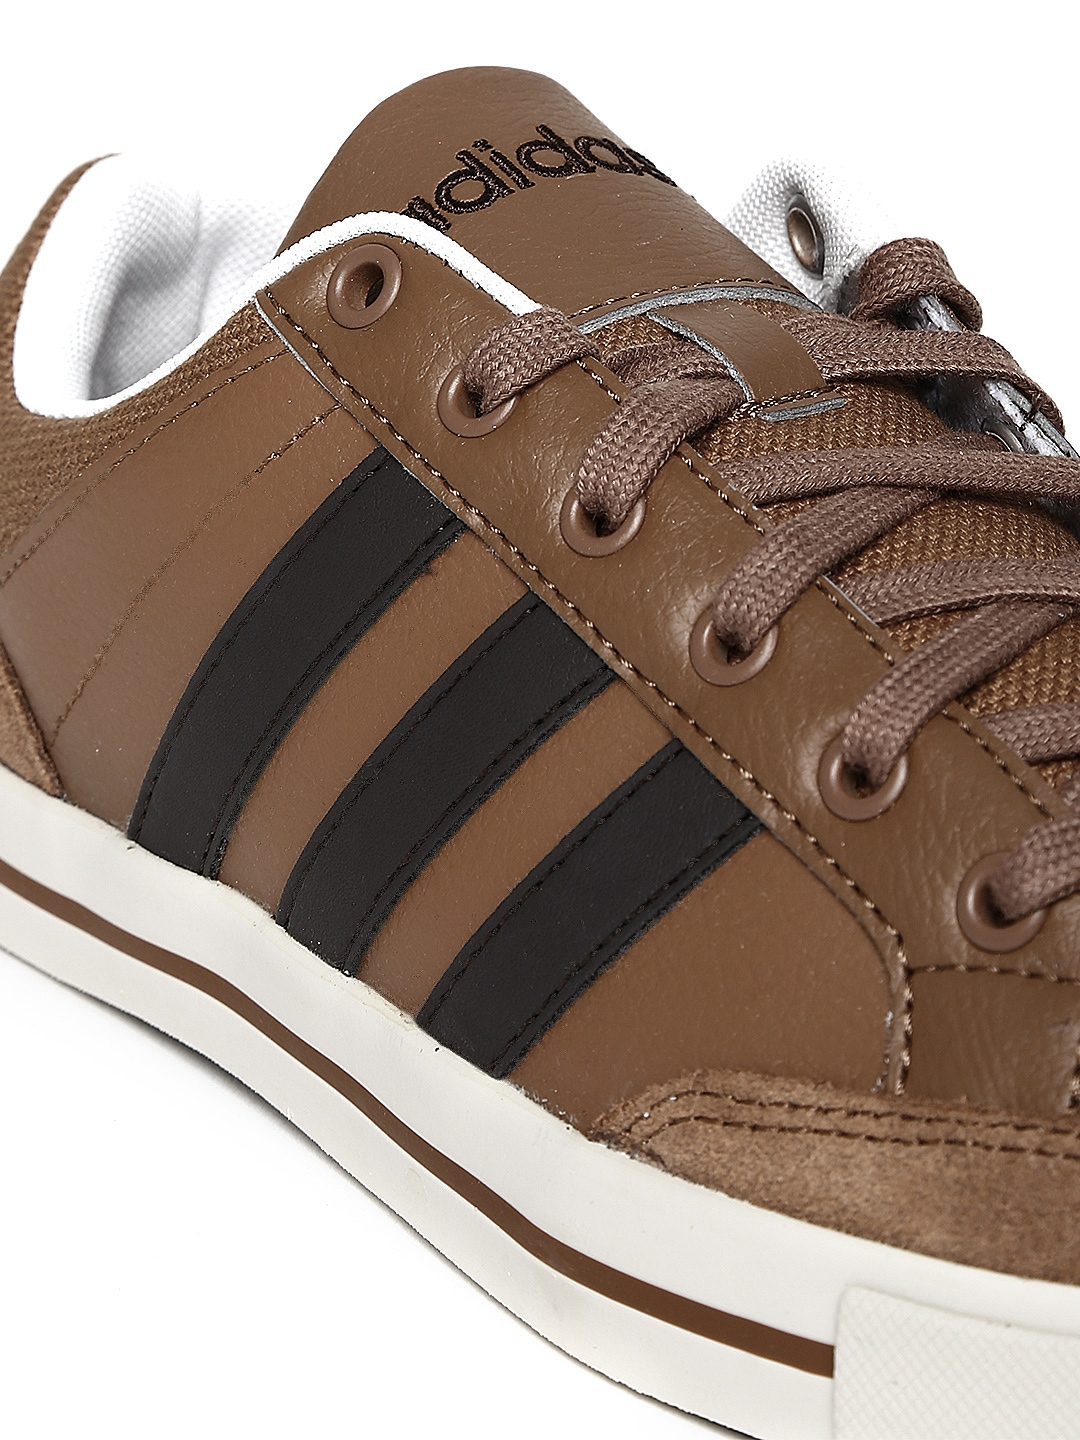 adidas leader shoes